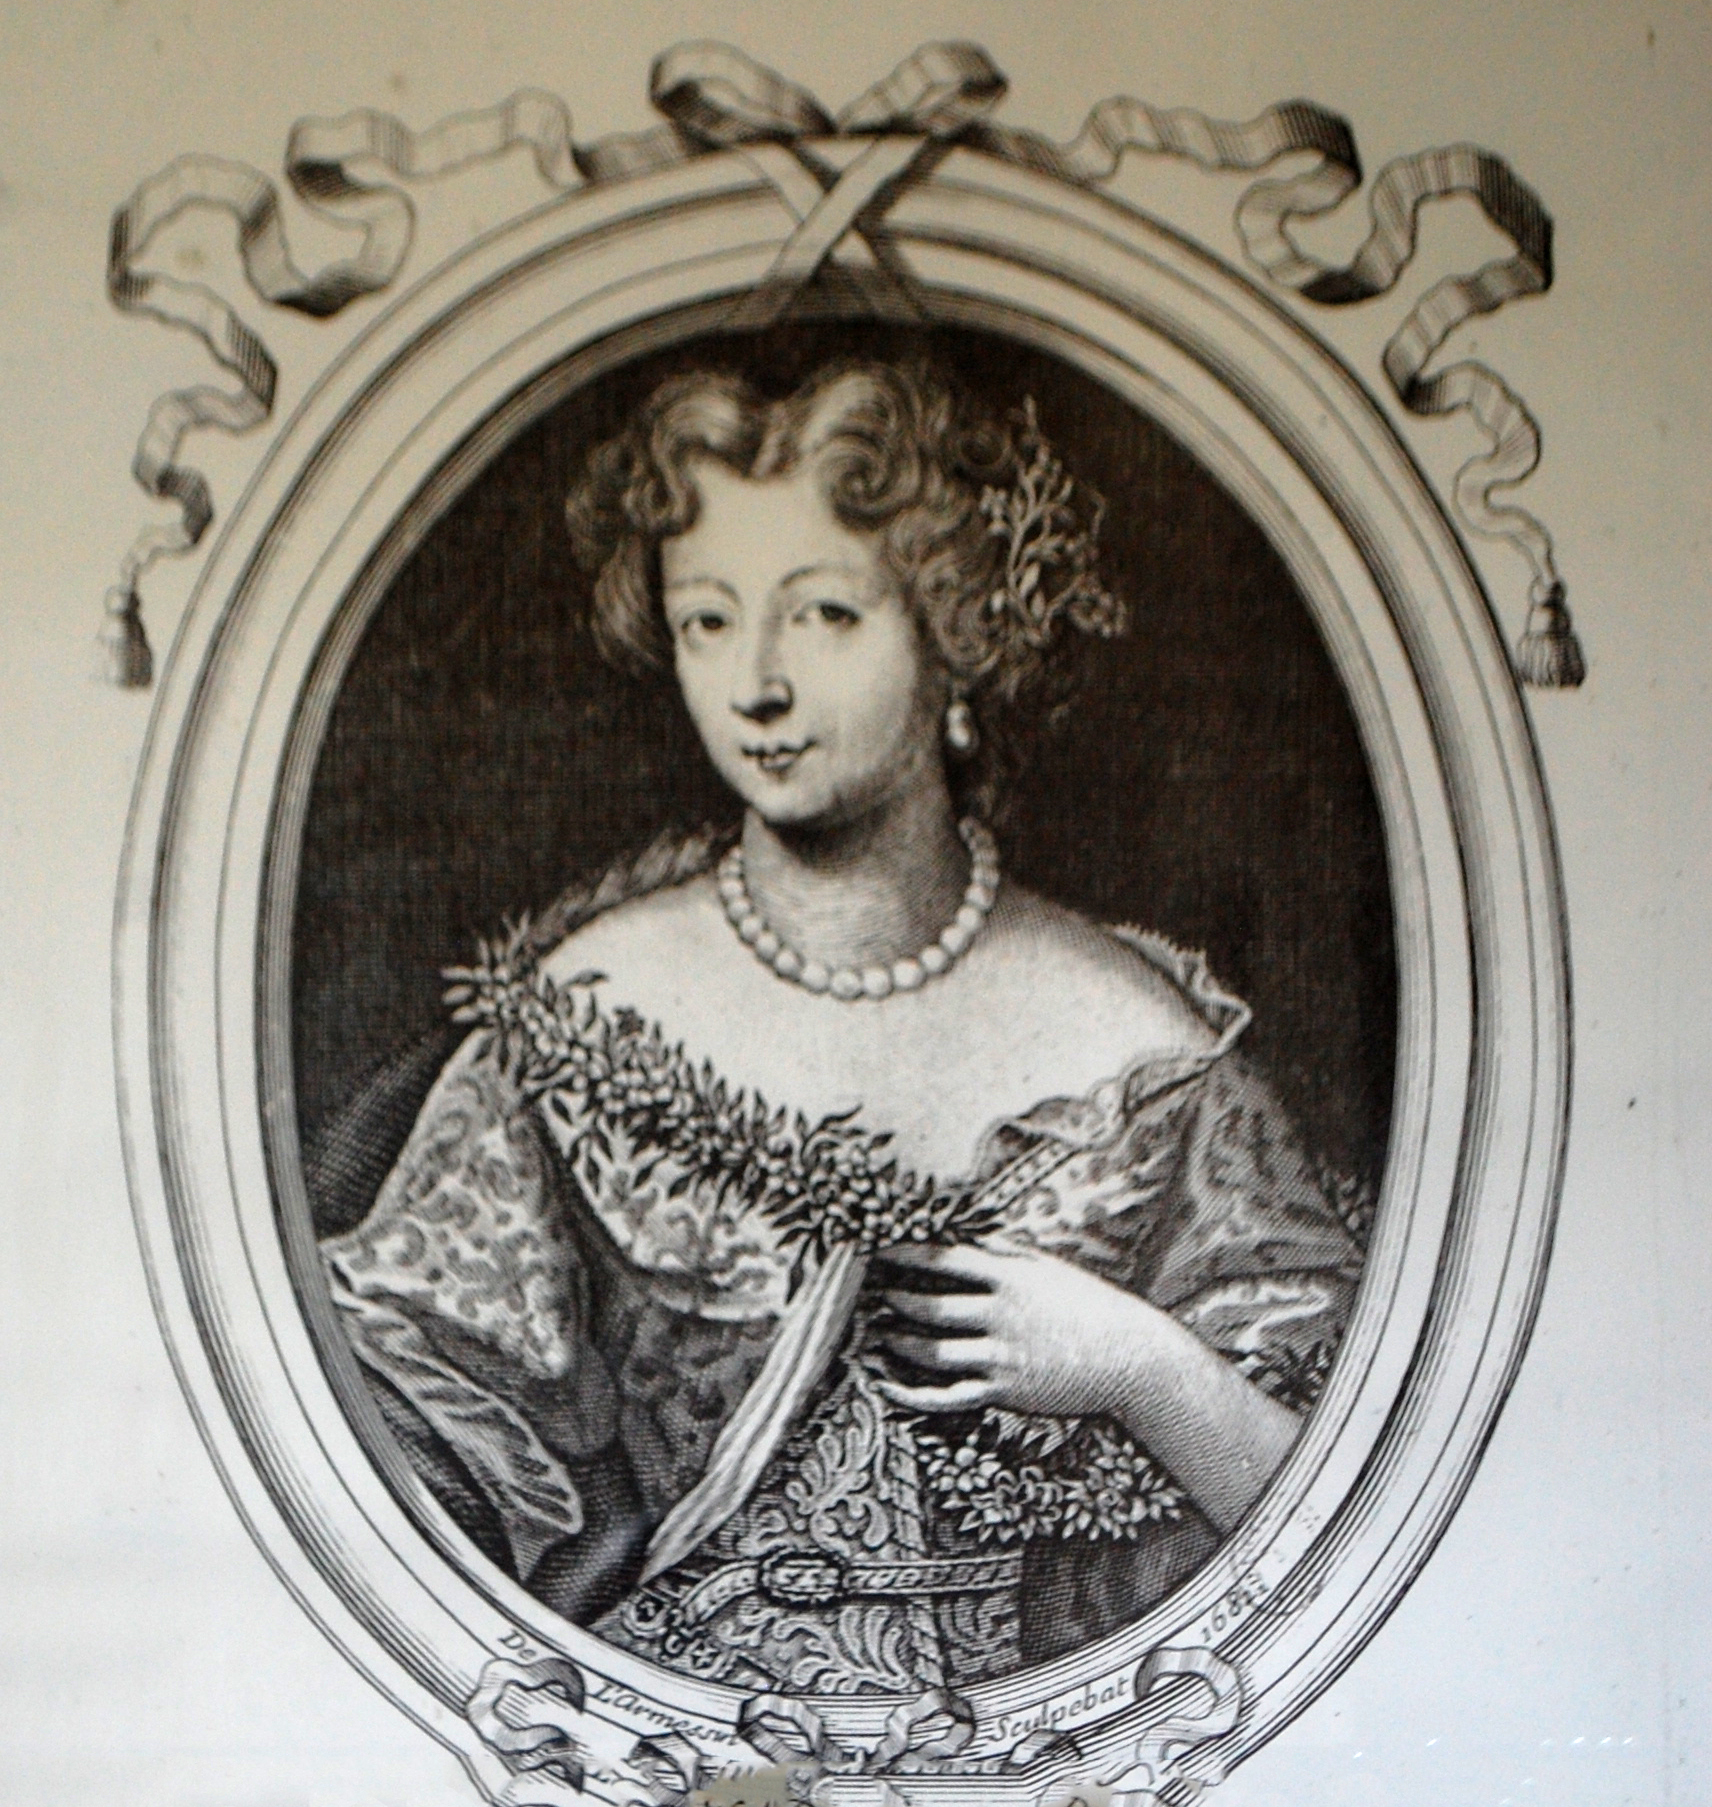 The princess Conti, who built our house